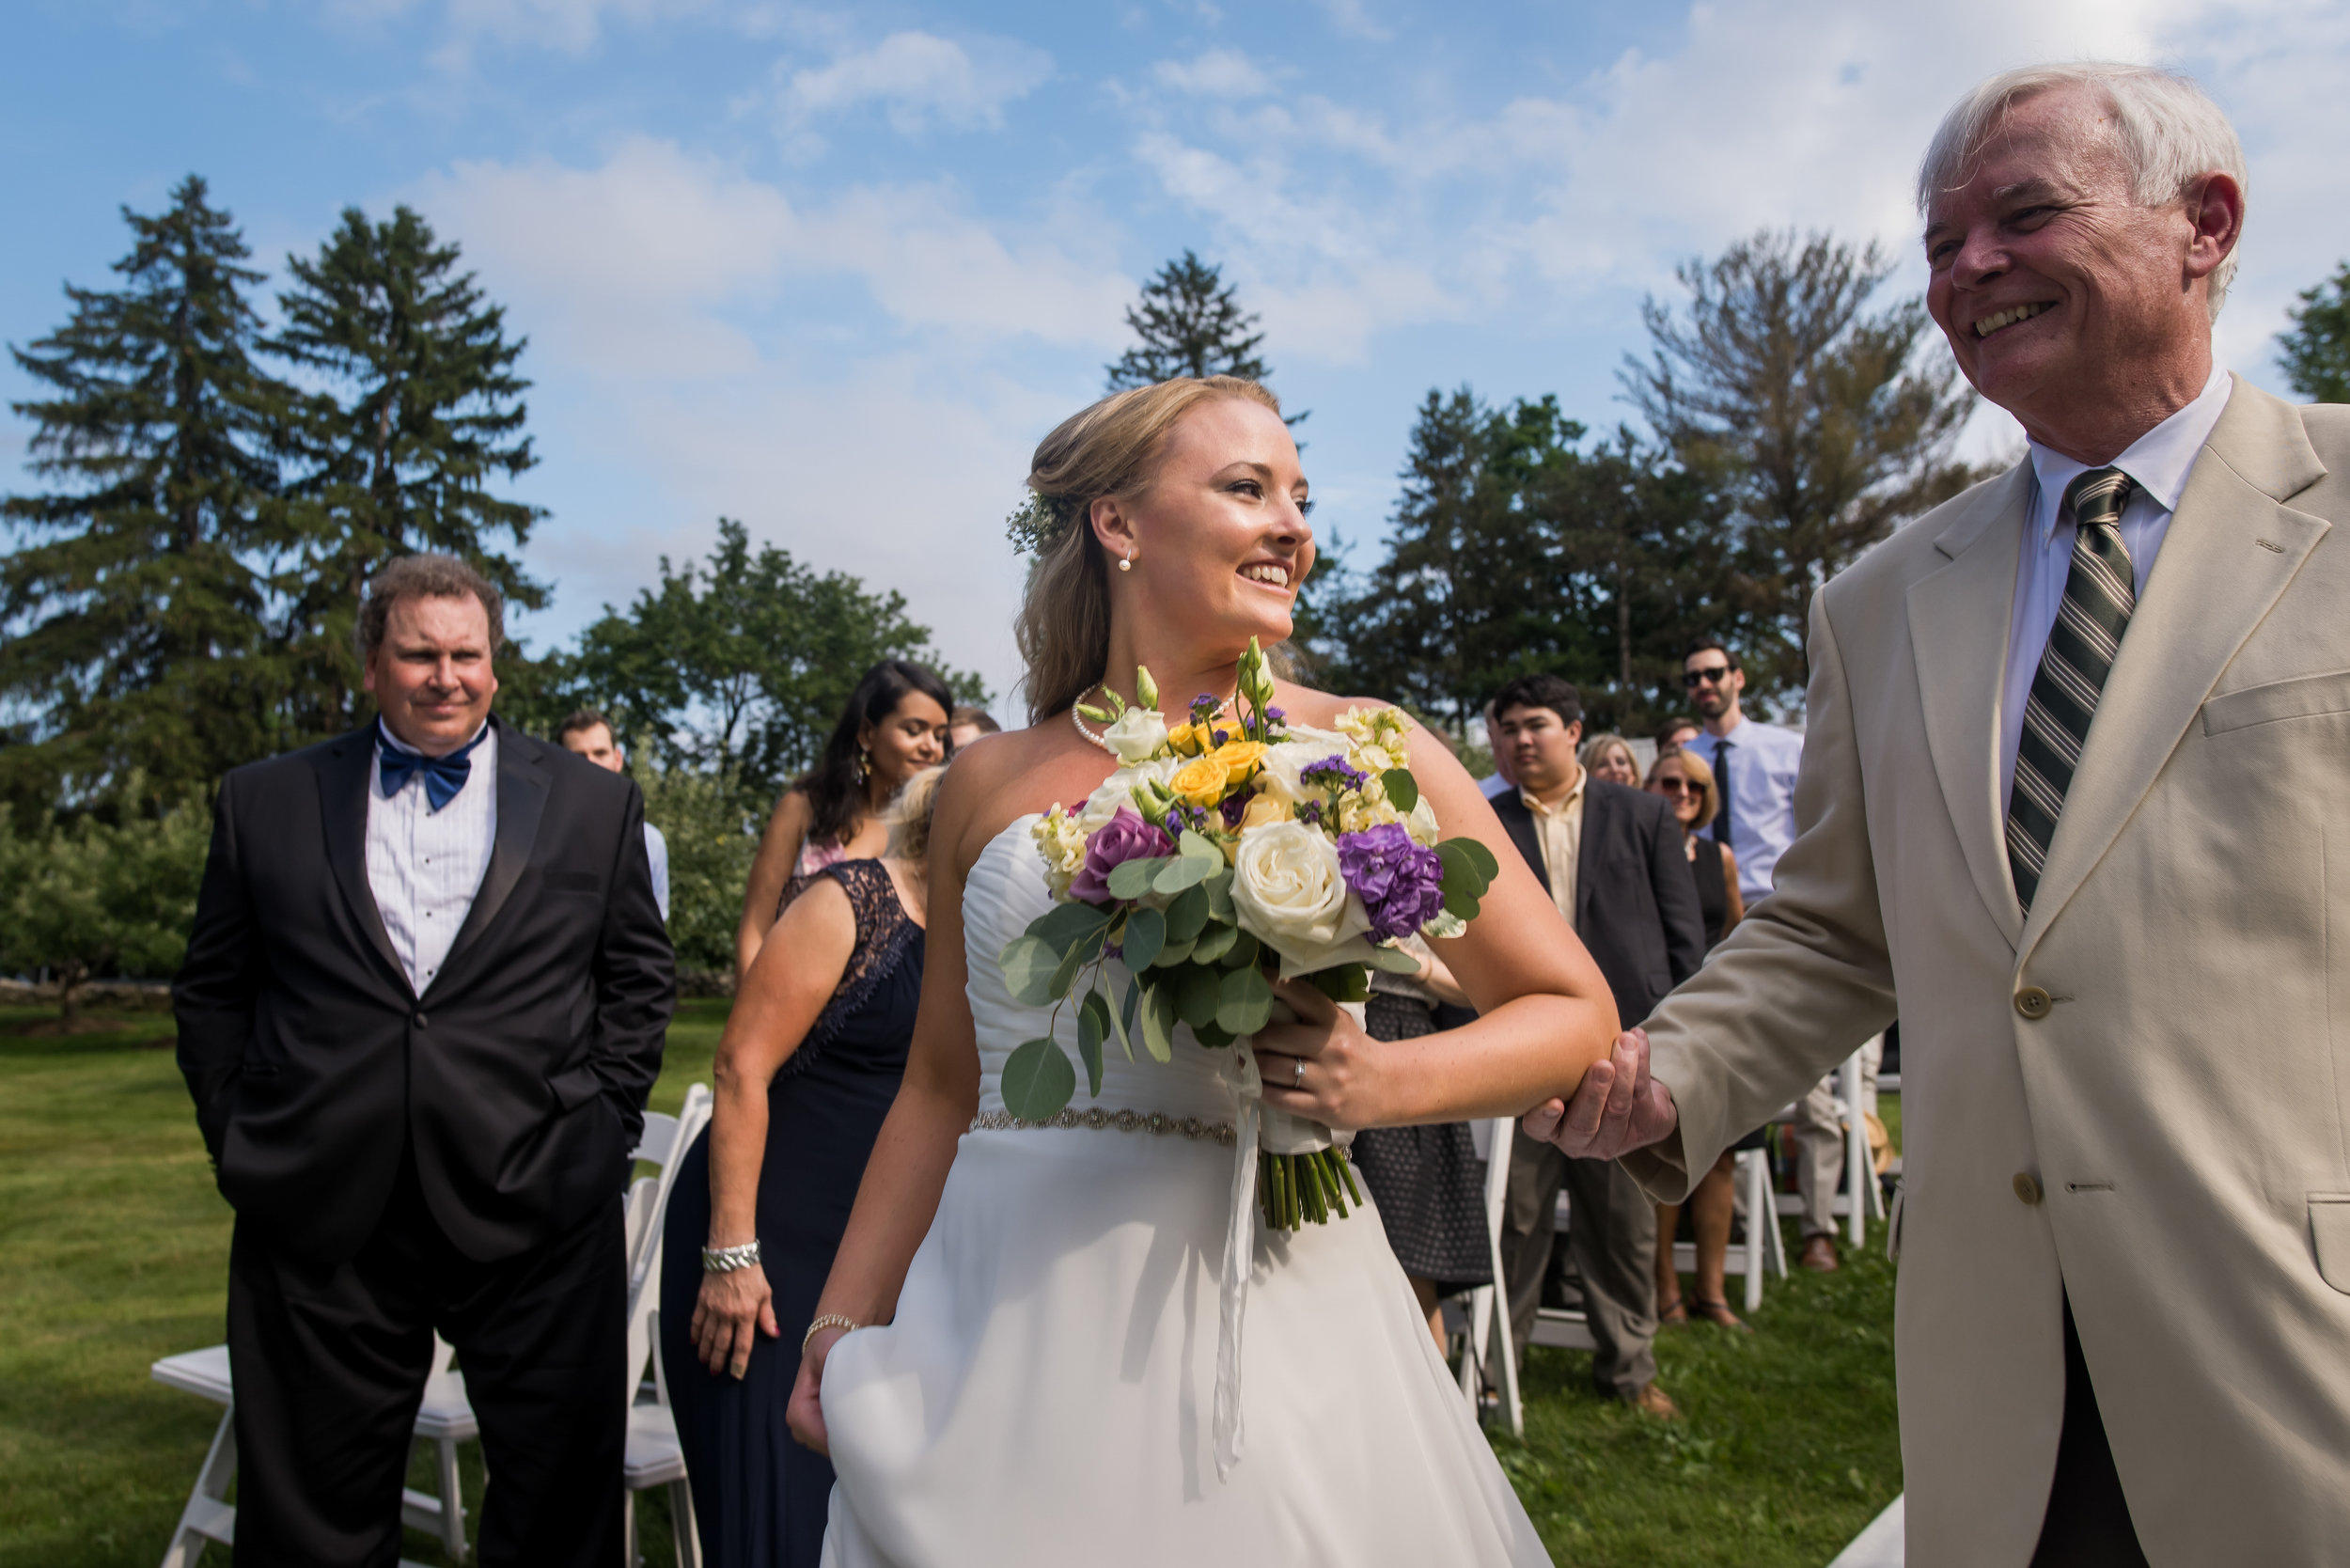 Stefy Hilmer Photography- father of the bride is walking her down the aisle.jpg